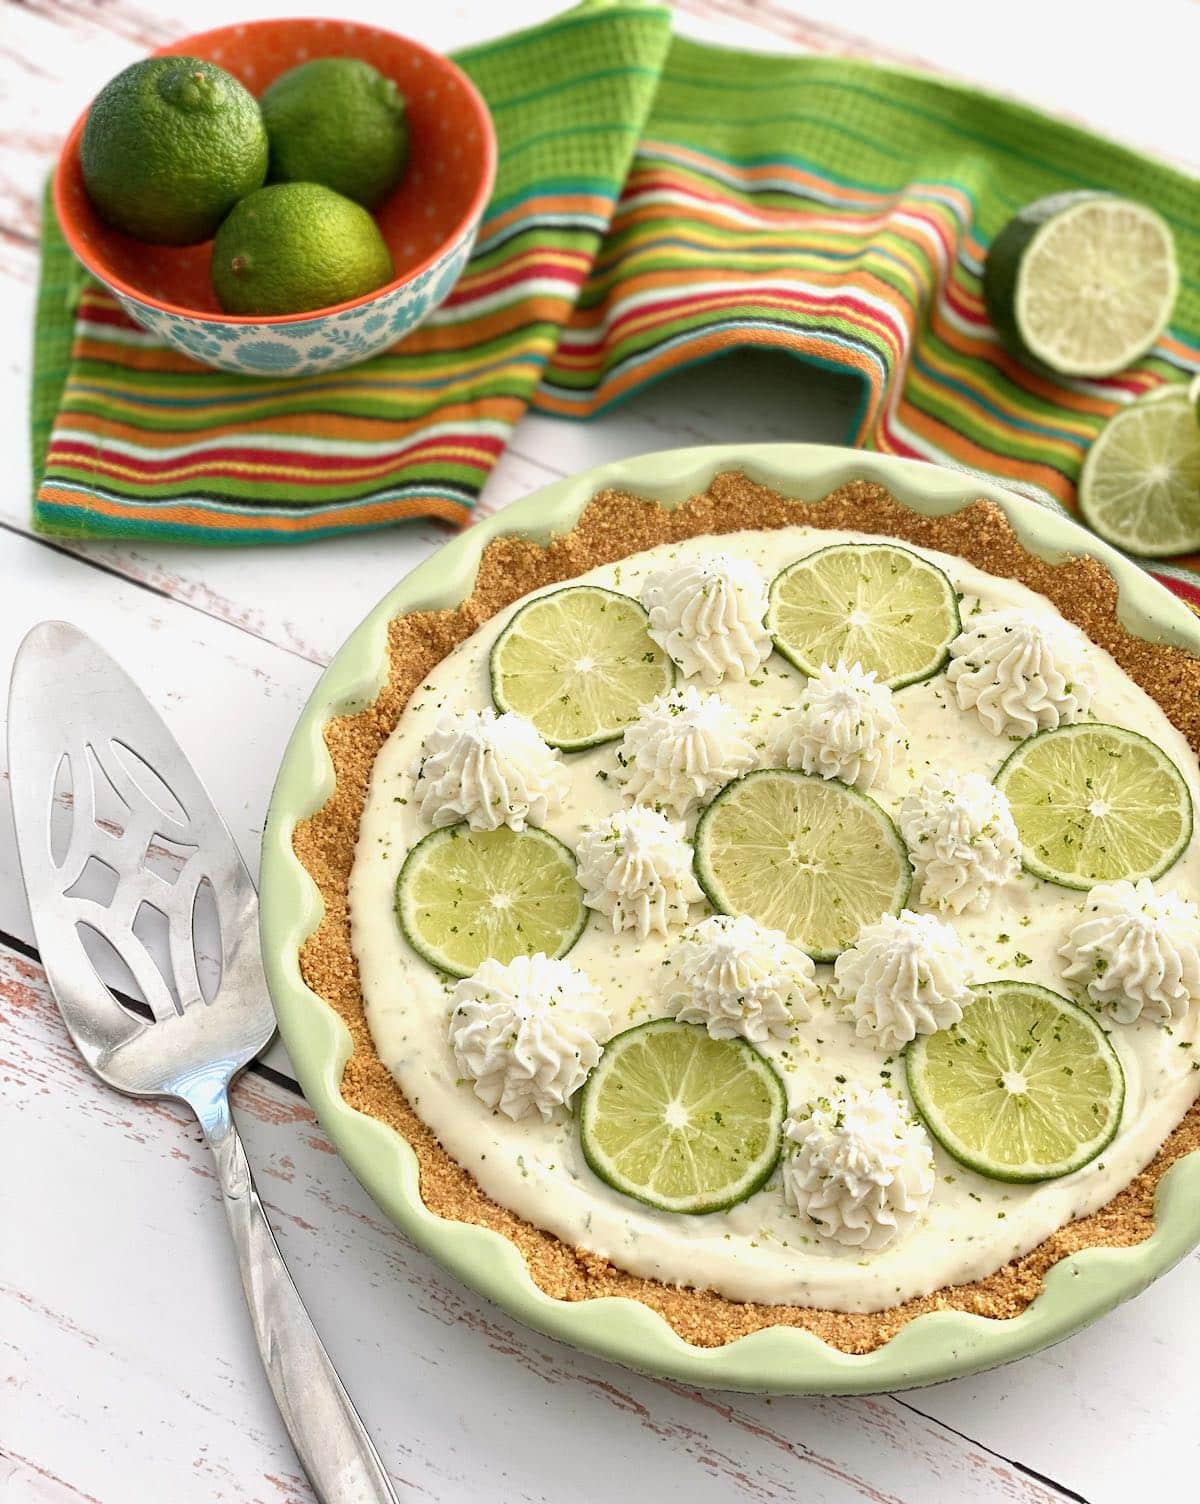 pie with key limes and whipped cream on top.